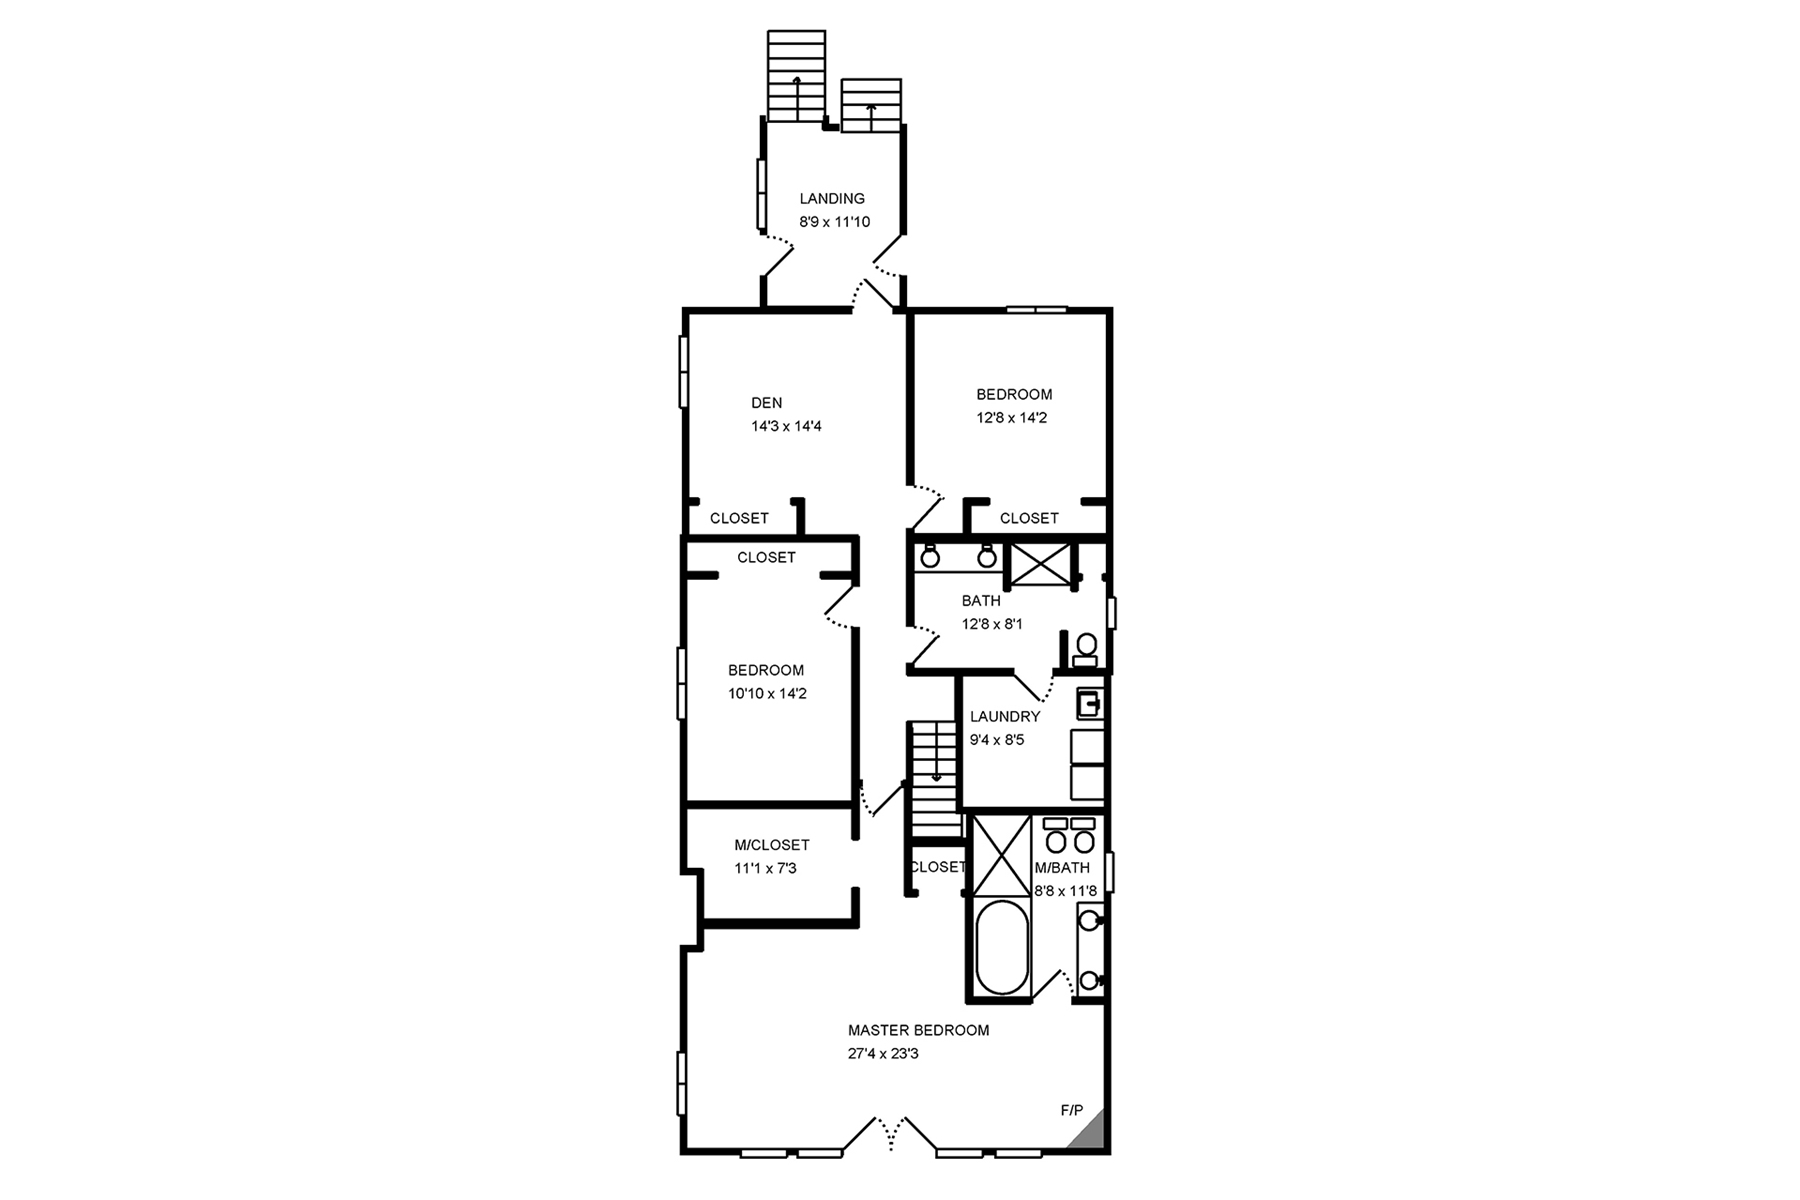 Floor Plan for Endless Summer - Large Home with views of the lake, Sleeps 16 plus Hot Tub